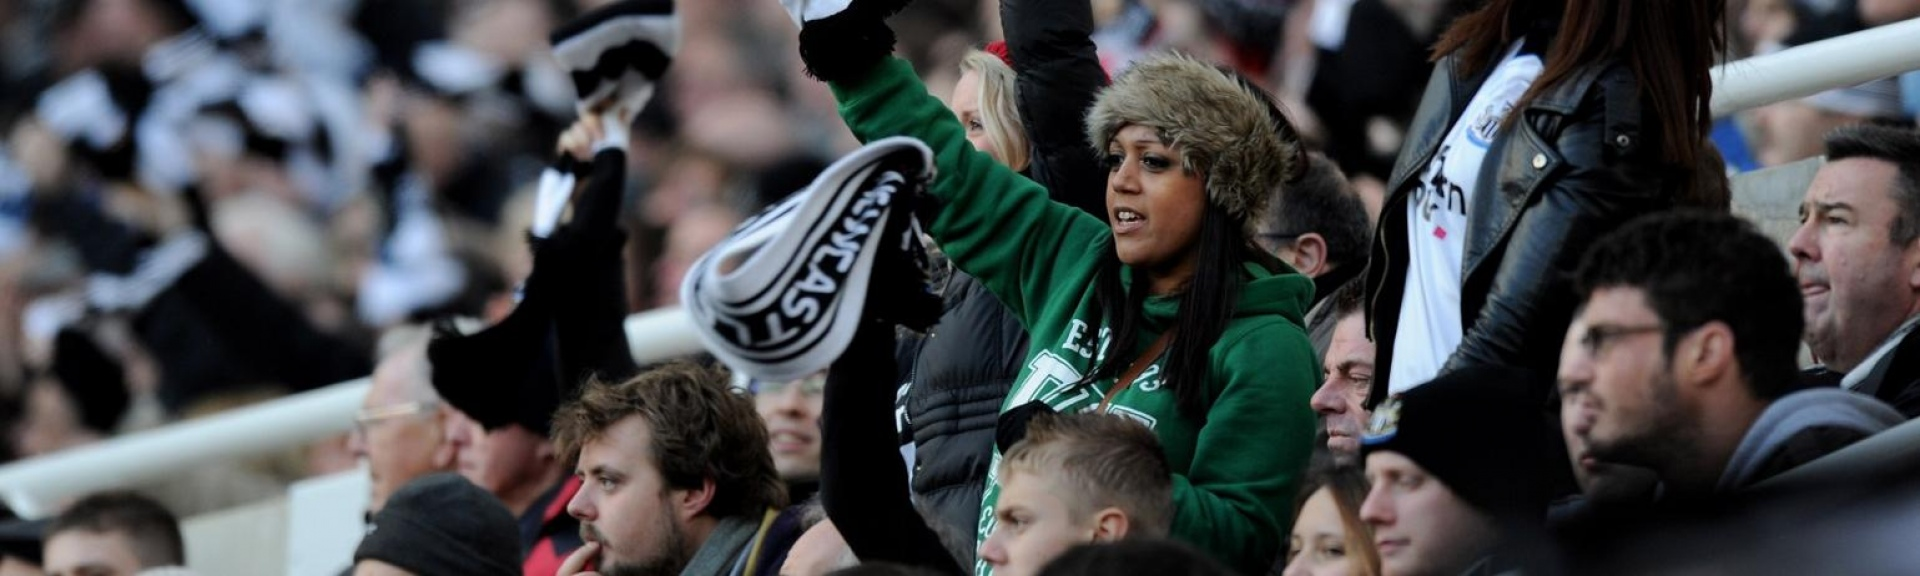 Football supporters at a Newcastle United F.C. match,